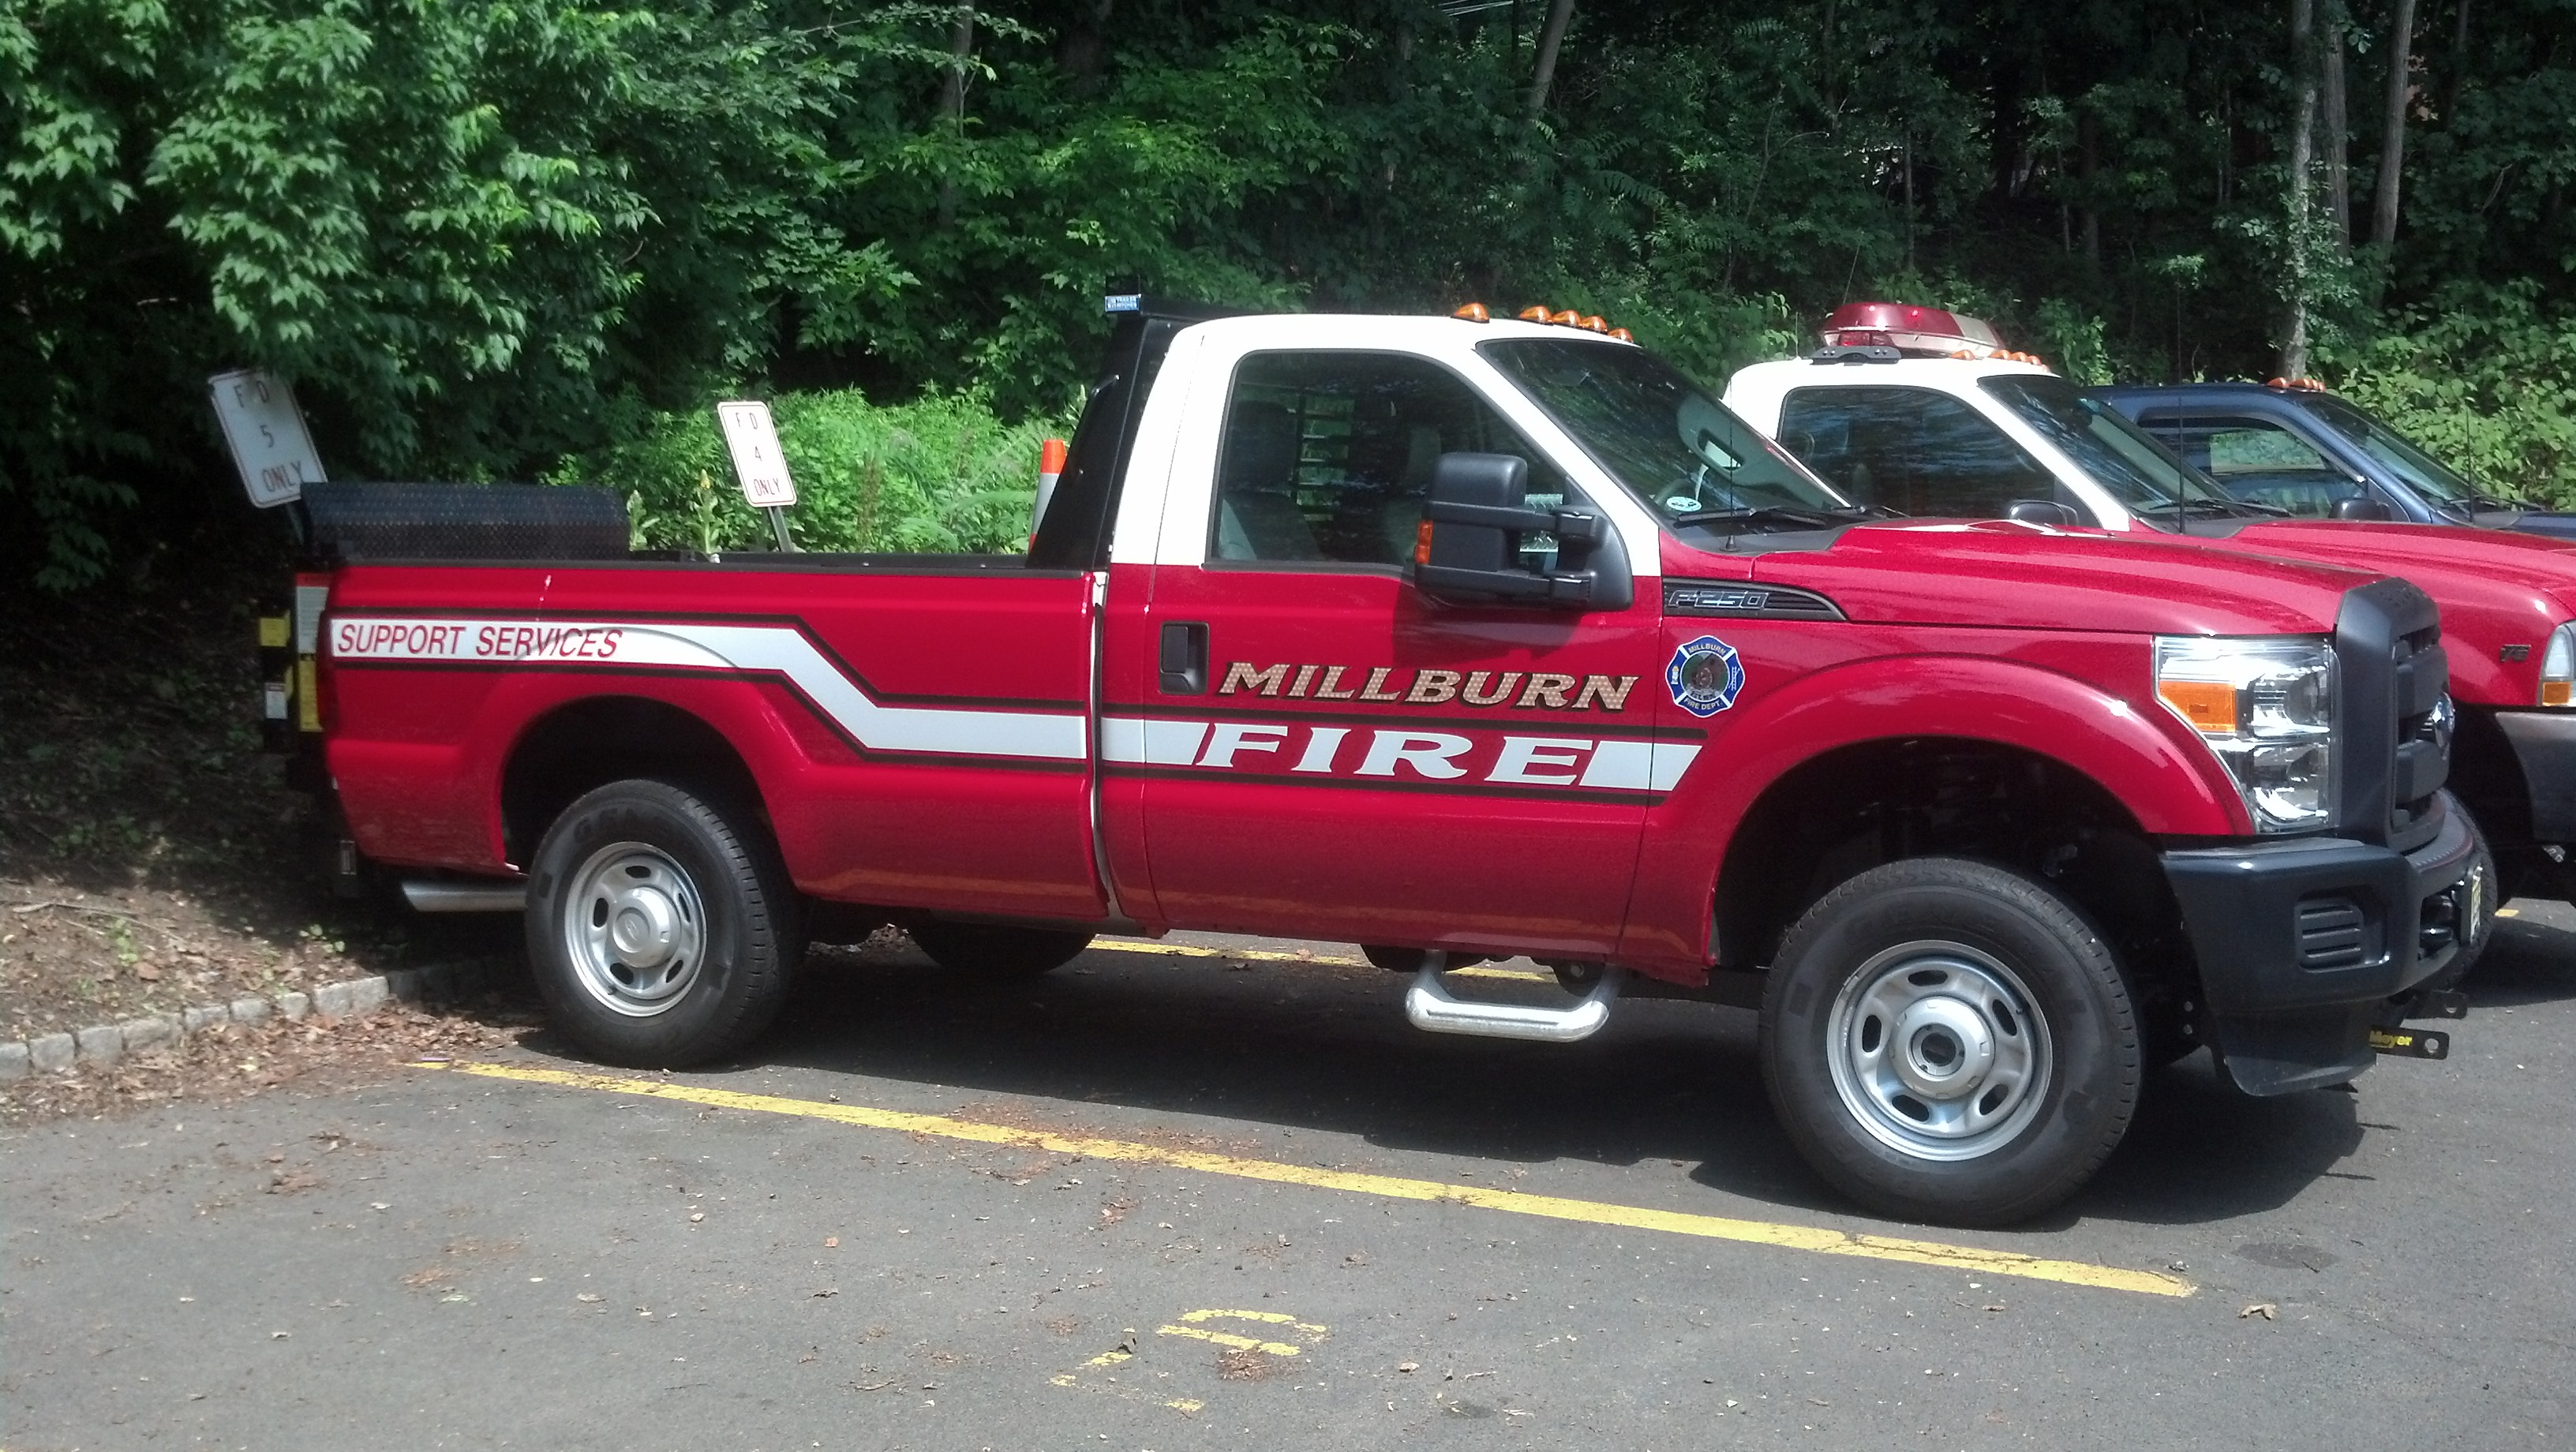 A red pickup truck with Millburn Fire on the side